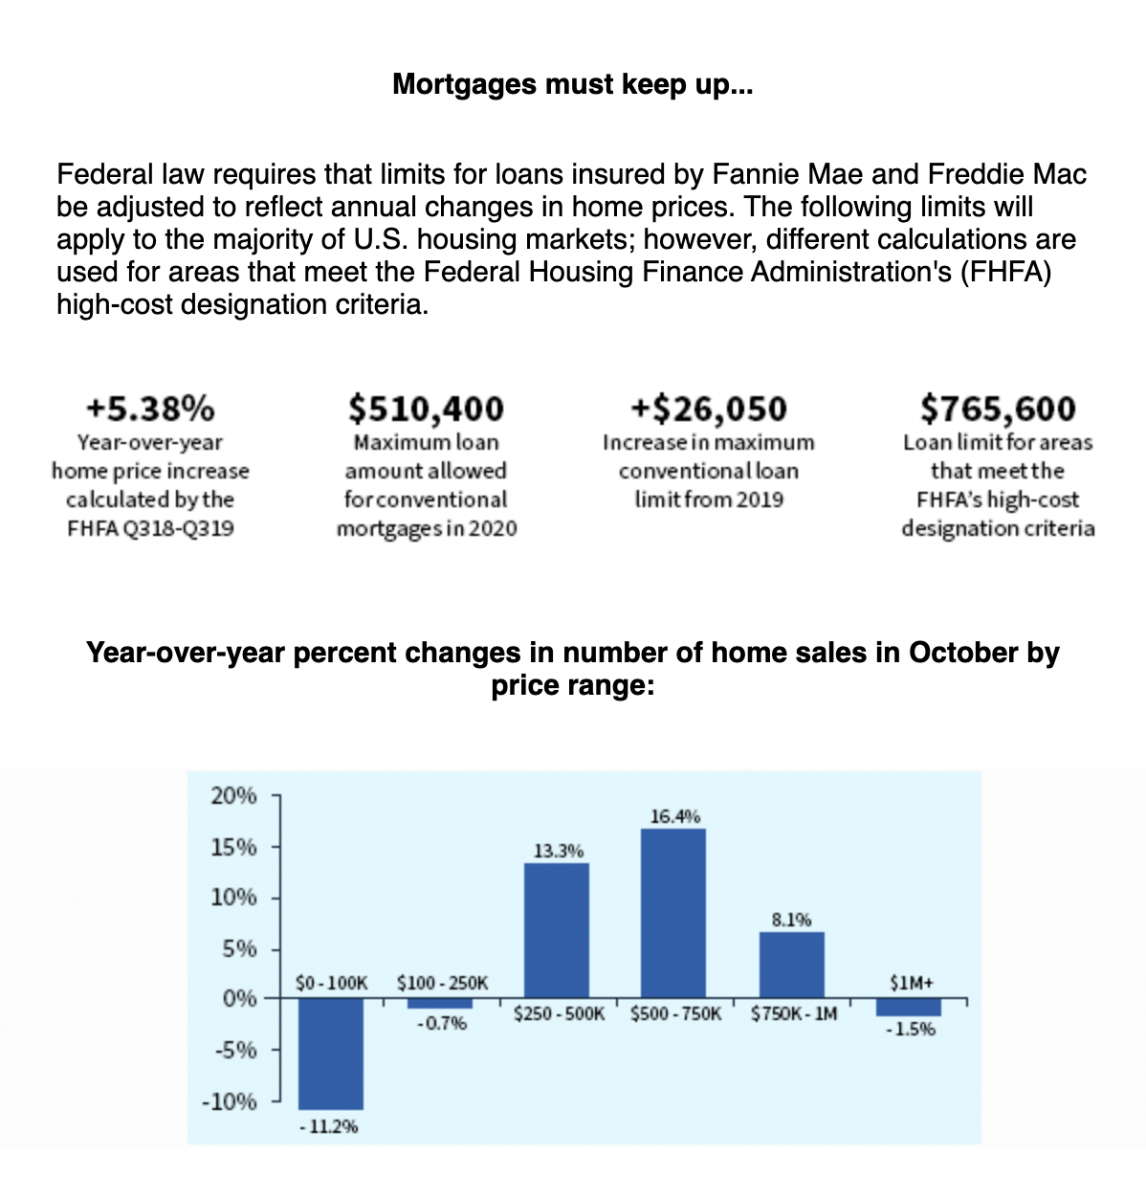 Mortgages must keep up